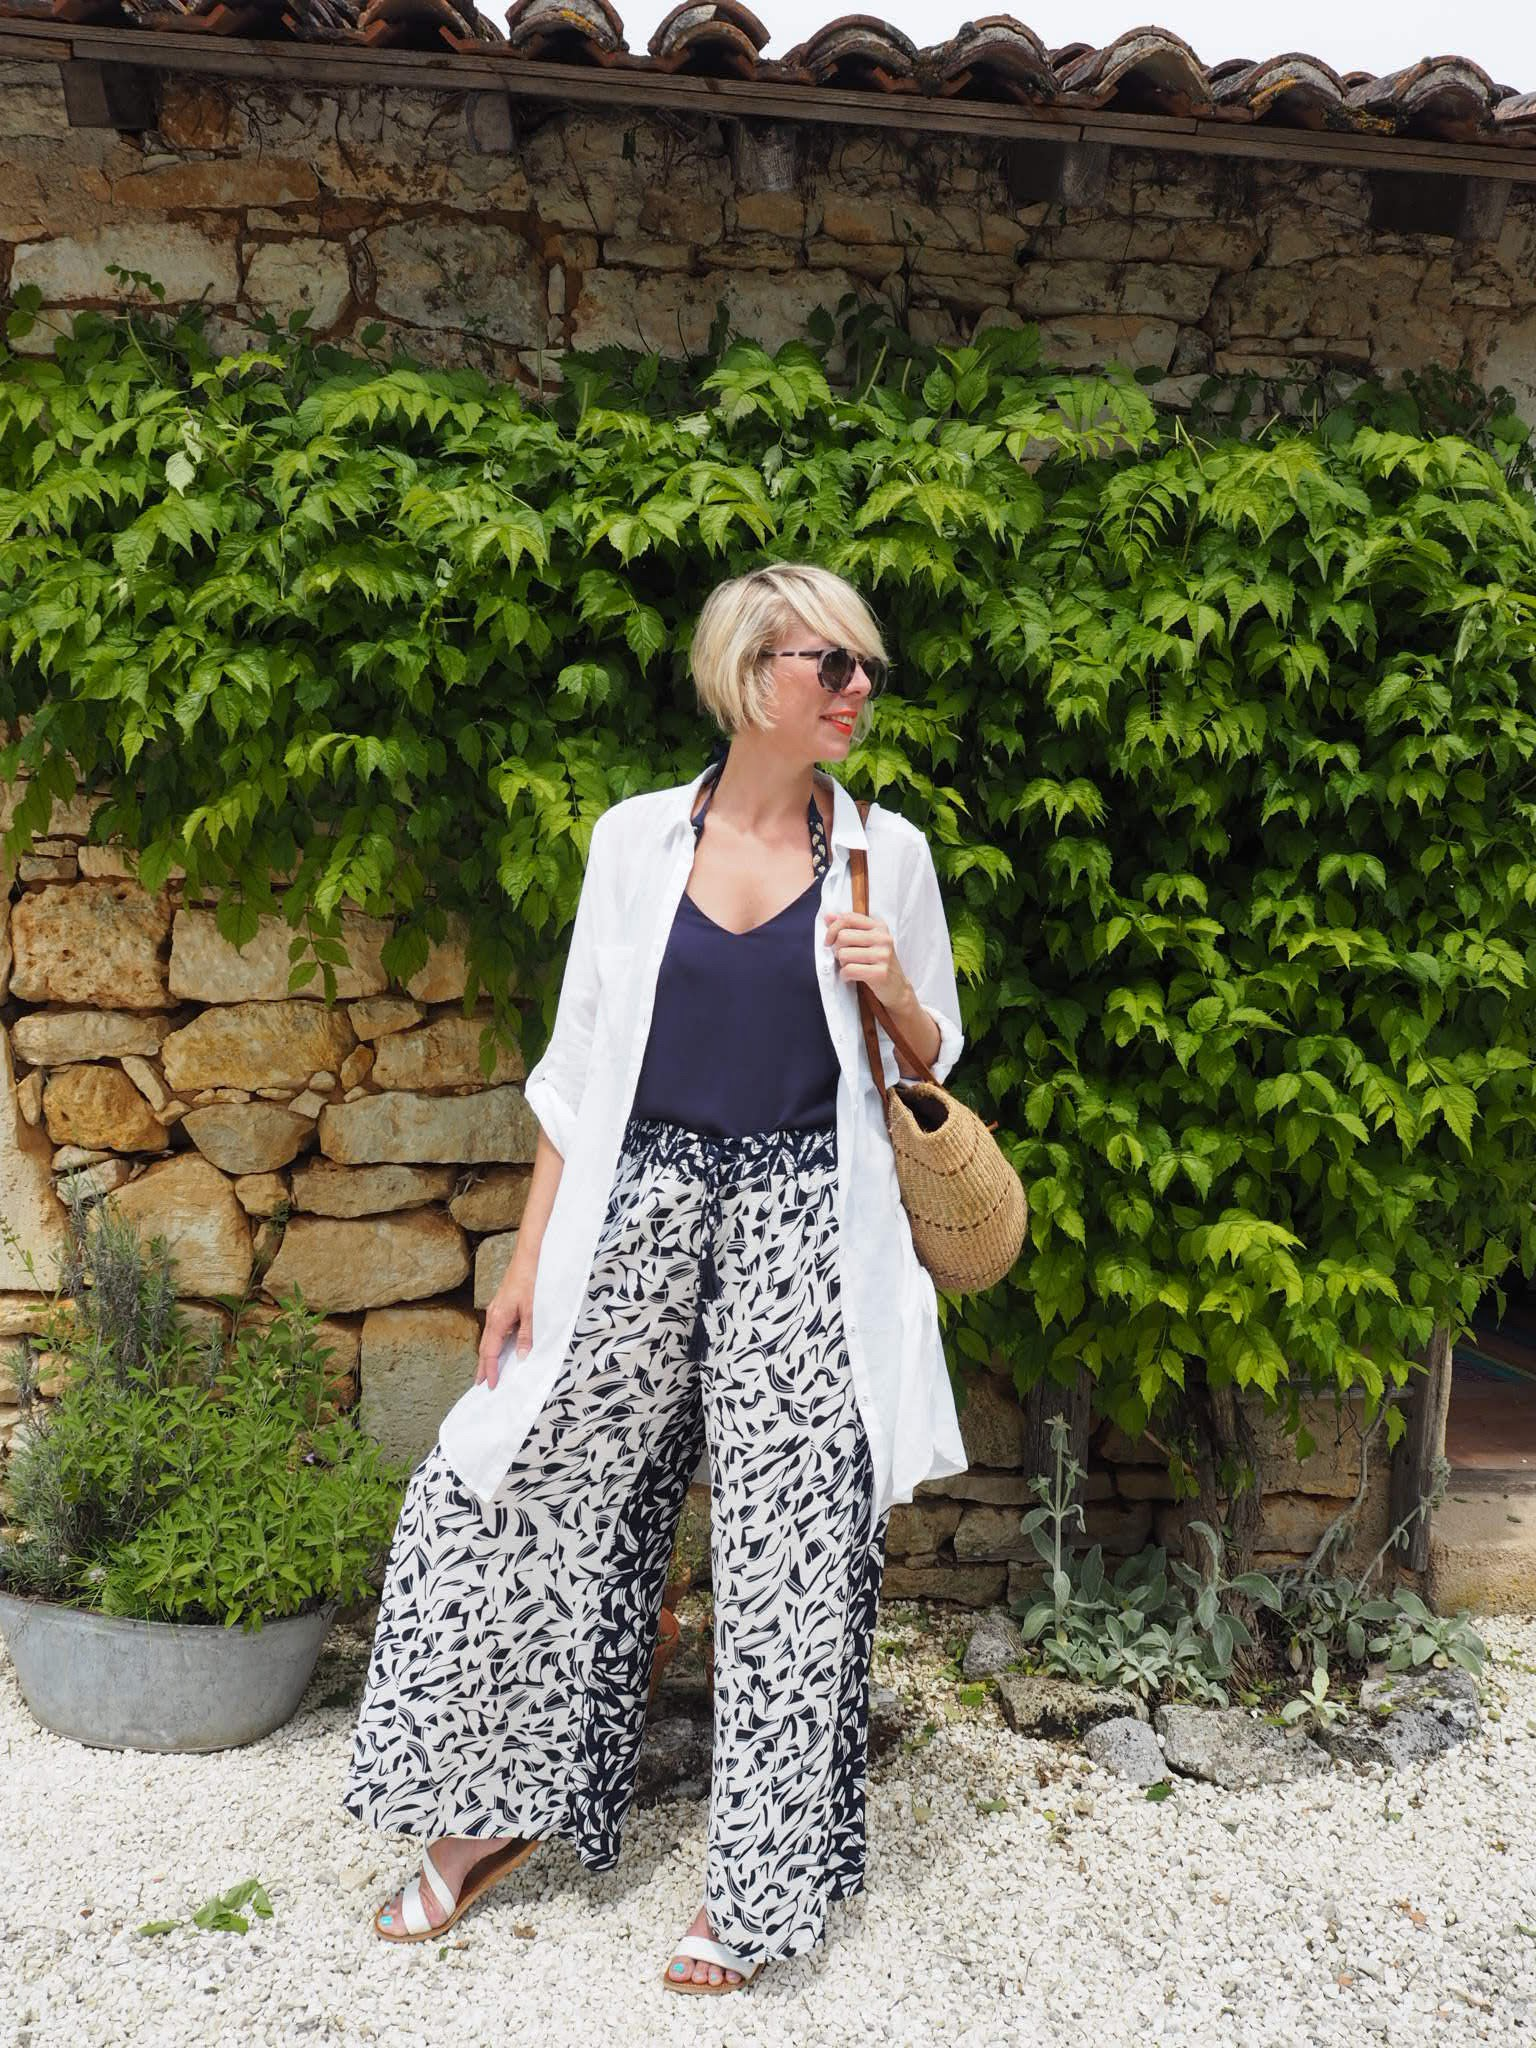 Lifestyle blogger Maxine Brady shares her summer style rules so that you can have the effortless looks for your holiday look.